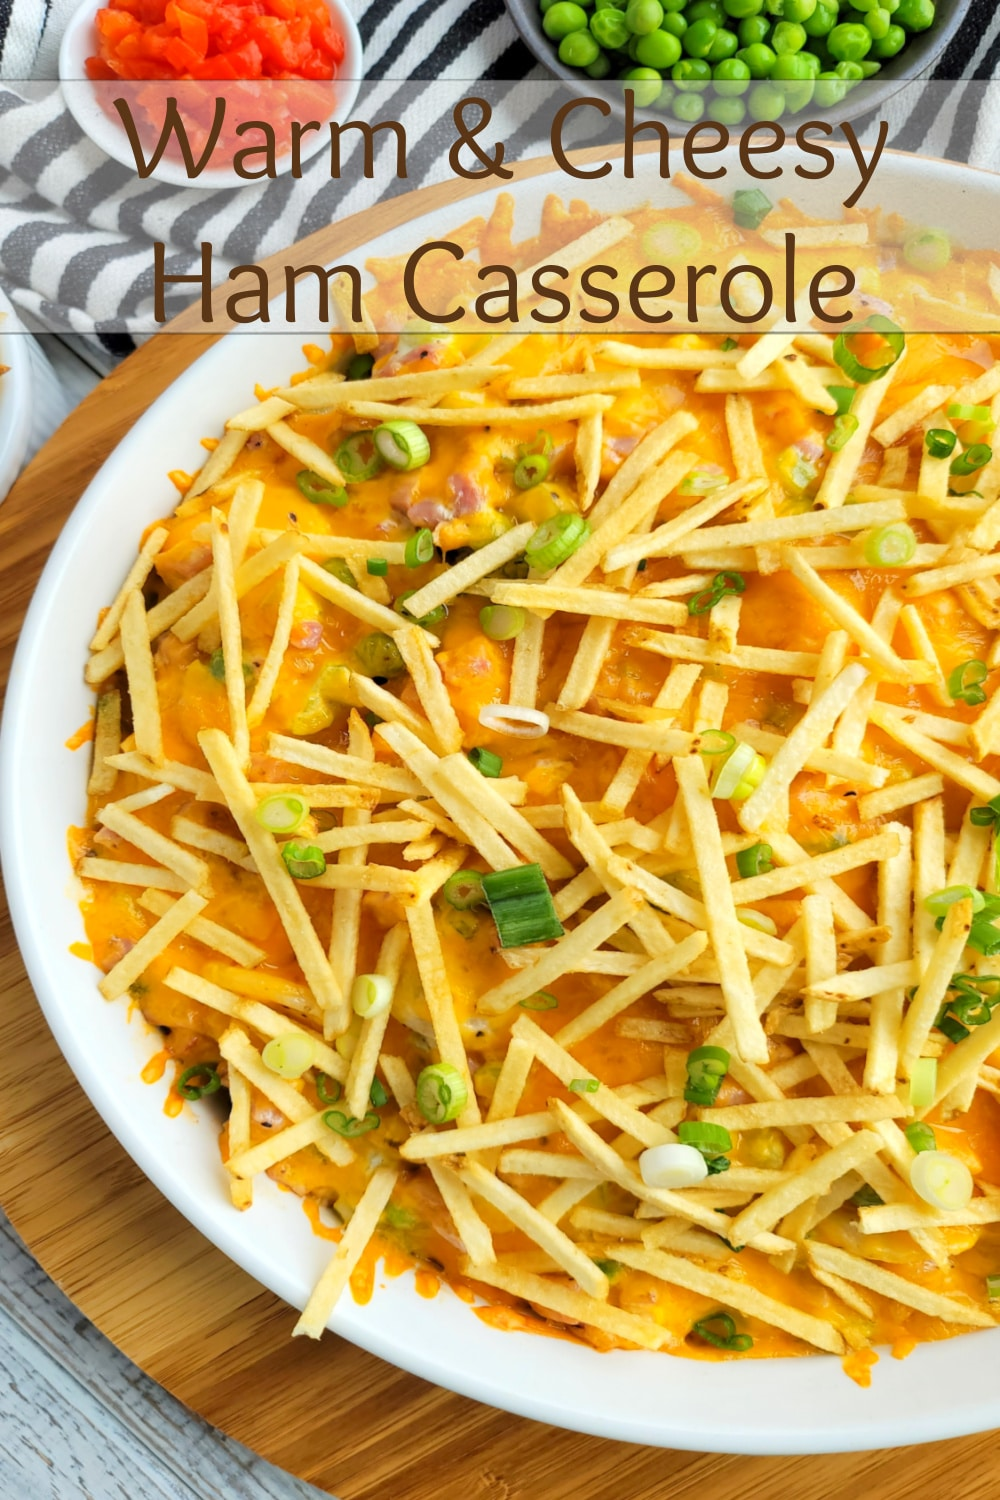 A Warm and Cheesy Ham Casserole that is going to change the way you feel about the taste of certain ingredients together. This casserole is a flavor powerhouse and will take your taste buds by surprise. via @cmpollak1